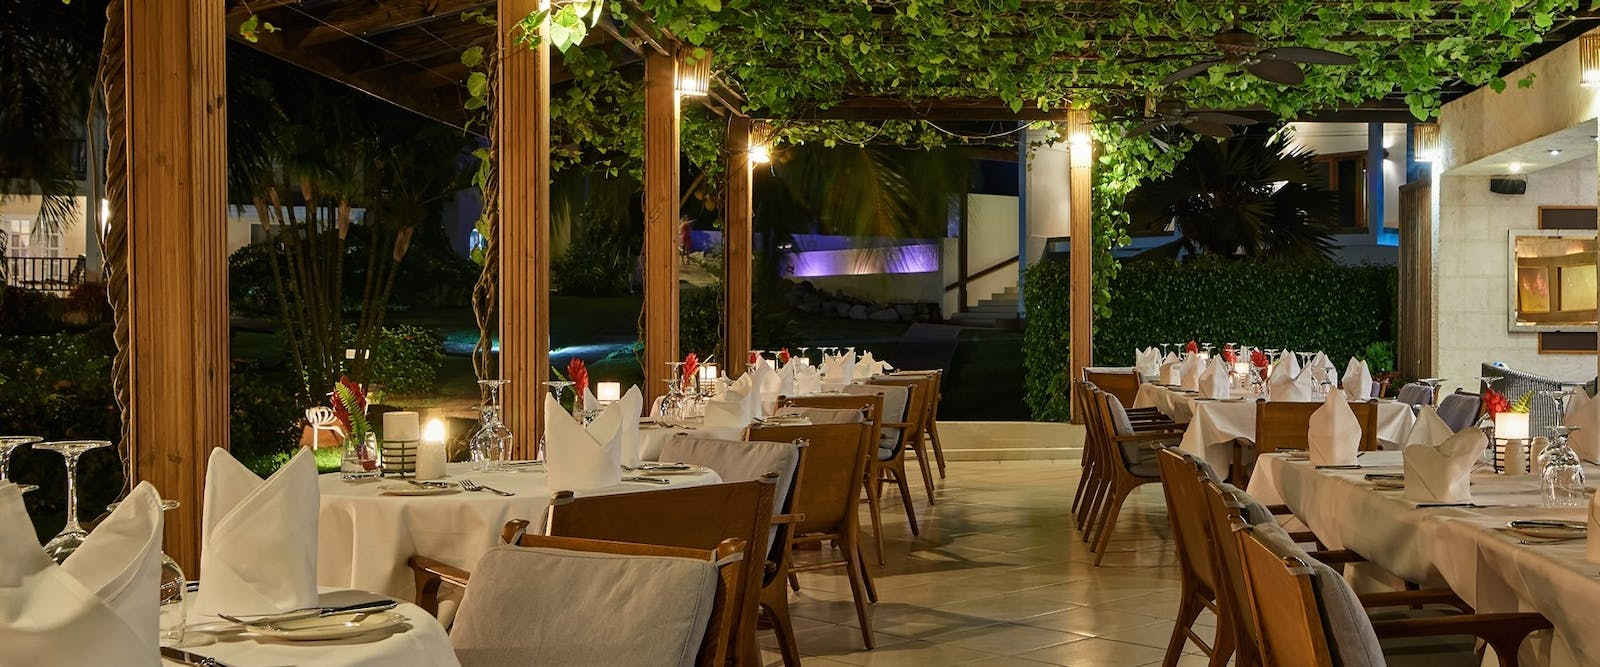 Elegant yet casual dining at Rhodes restaurant at Calabash Luxury Boutique Hotel & Spa, Grenada